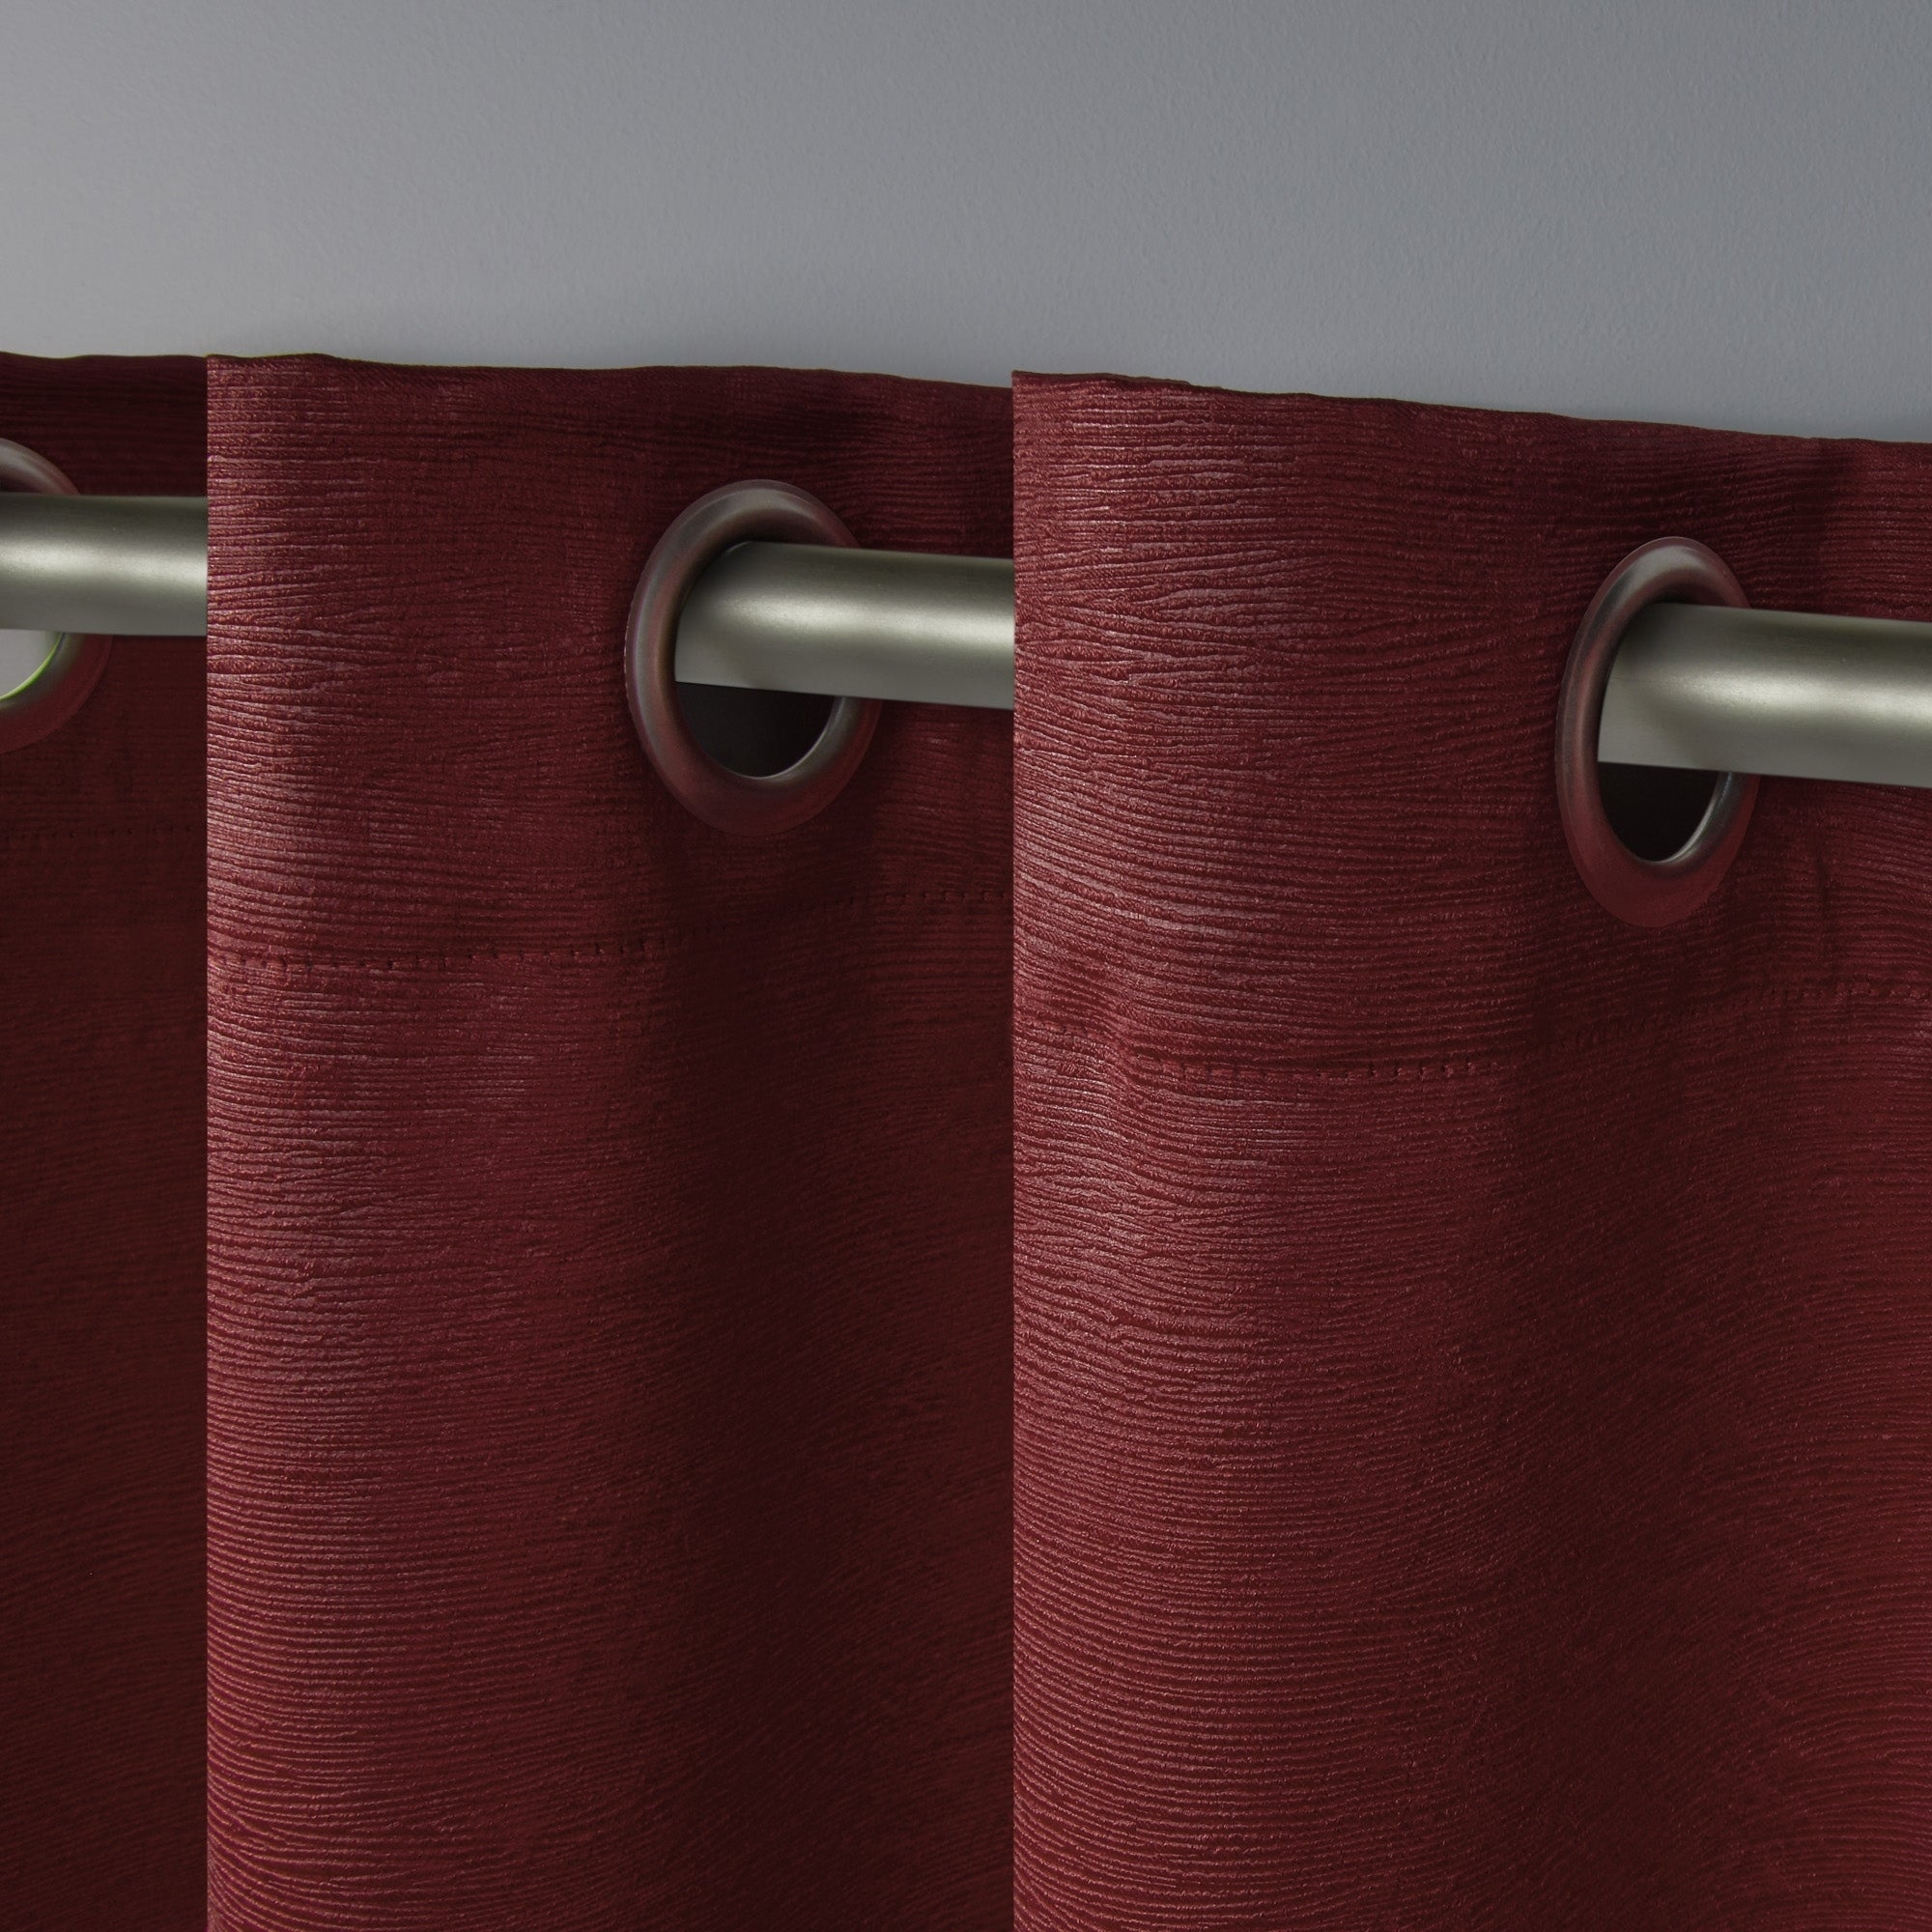 Ati Home Oxford Sateen Woven Blackout Grommet Top Curtain Throughout Oxford Sateen Woven Blackout Grommet Top Curtain Panel Pairs (View 18 of 20)